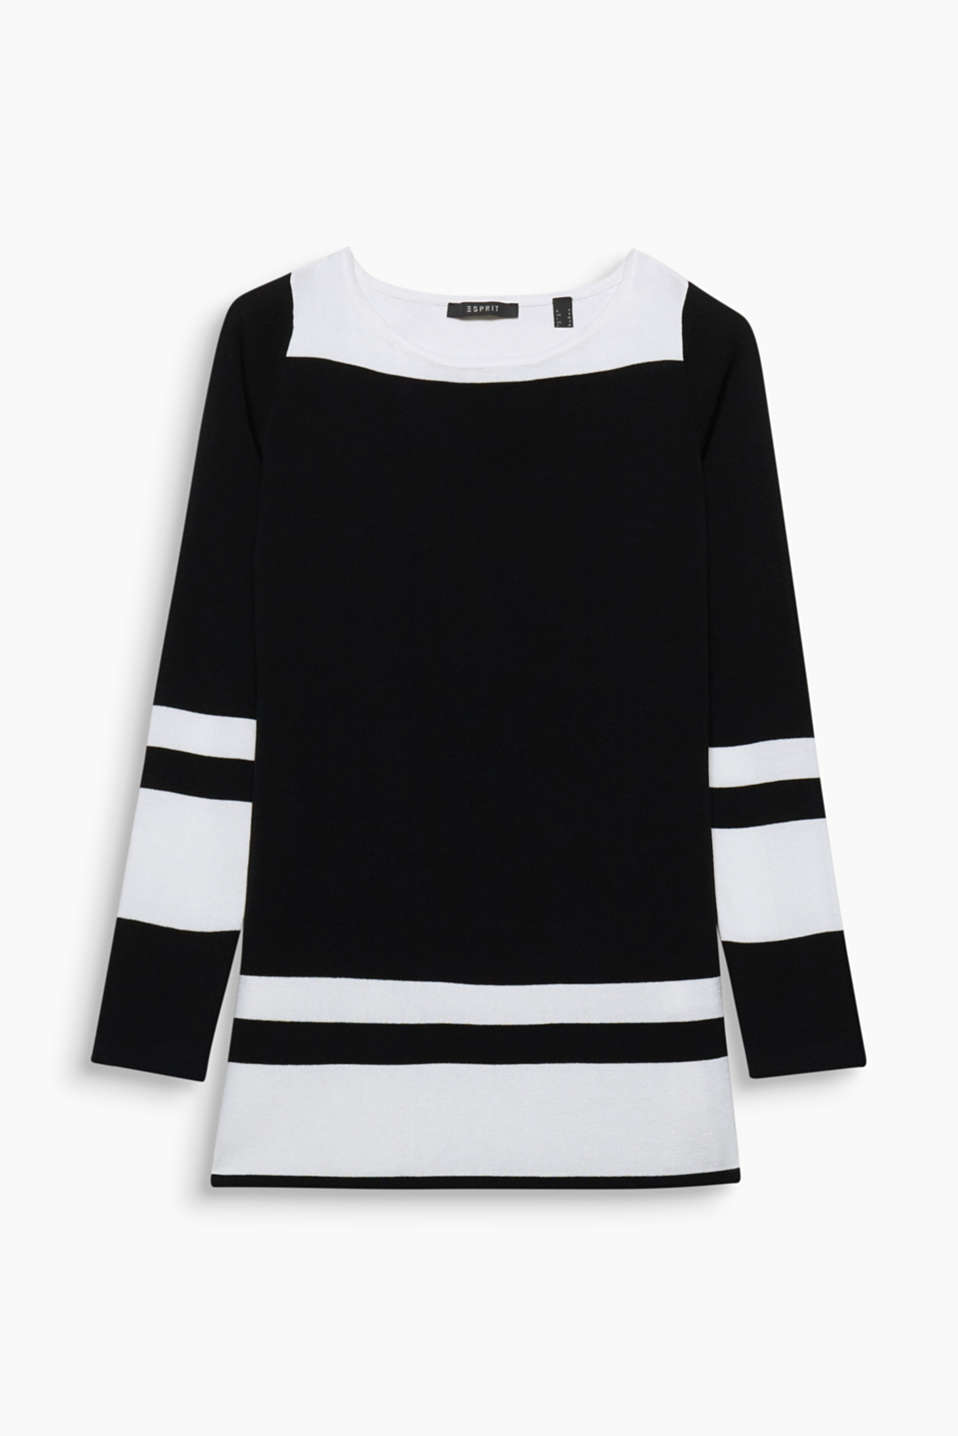 Colour block effects give a clean chic look to this jumper in compact yarn!